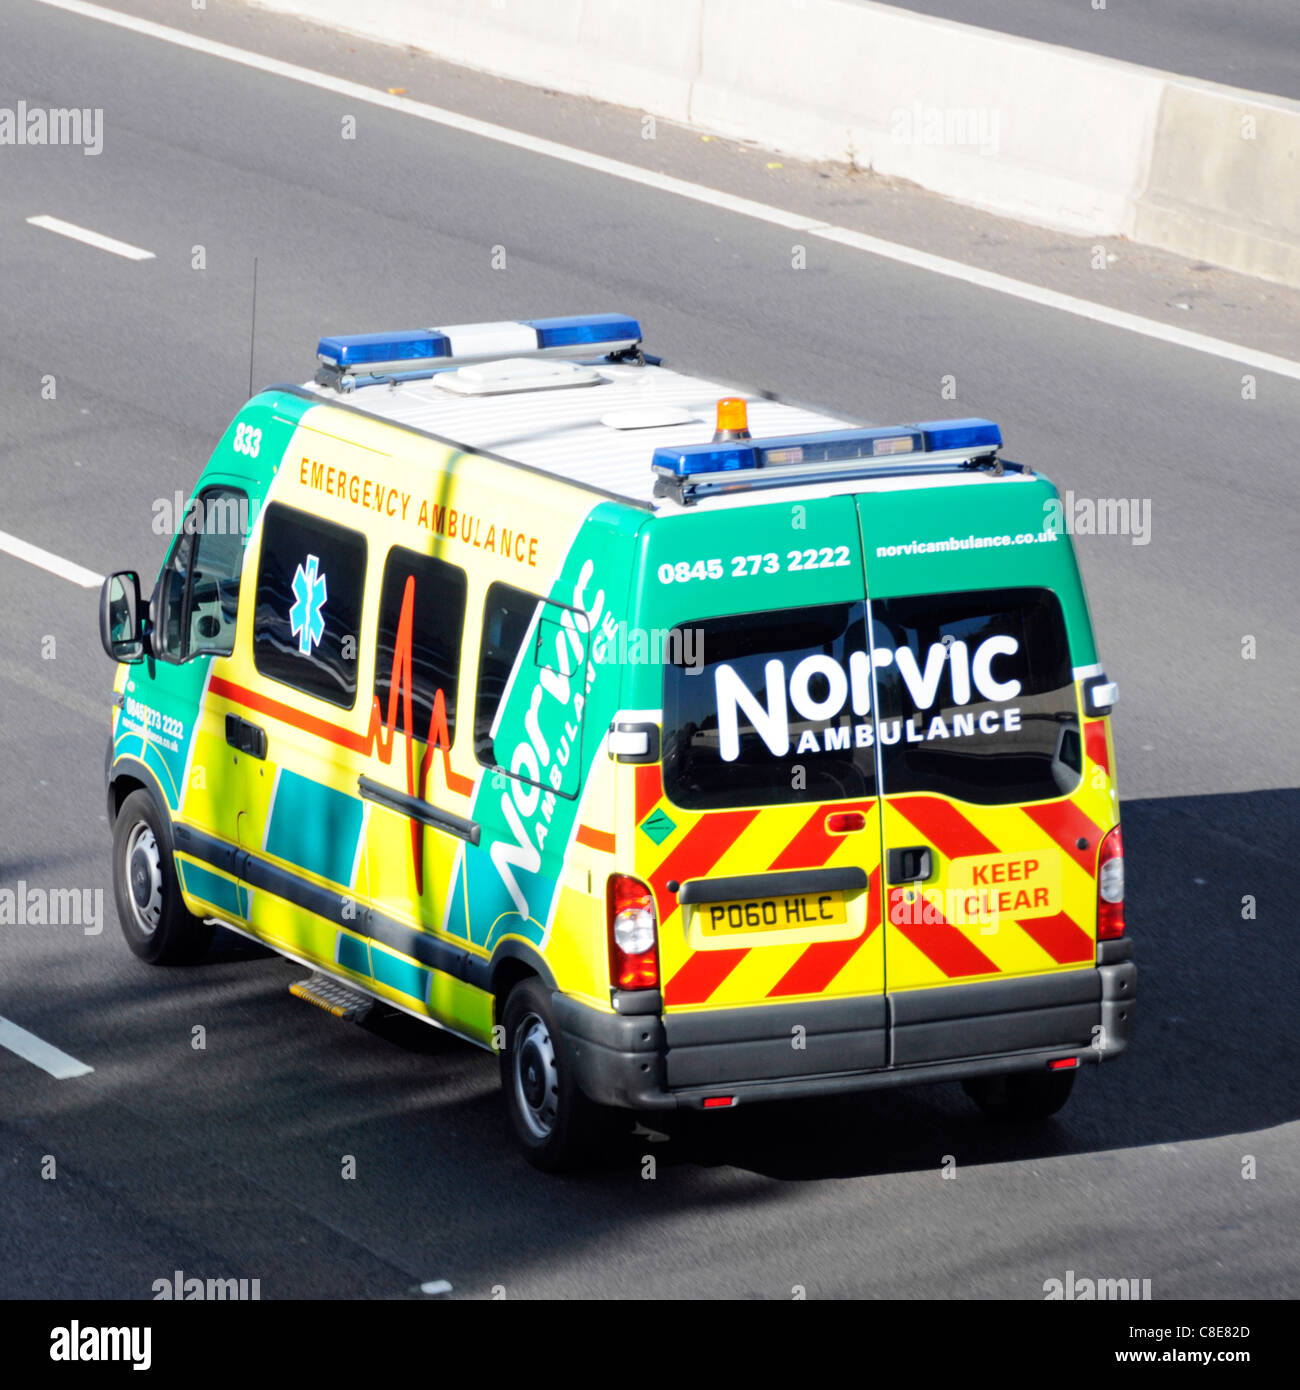 Norvic private sector emergency health care ambulance business driving along M25 motorway Essex England UK - Stock Image